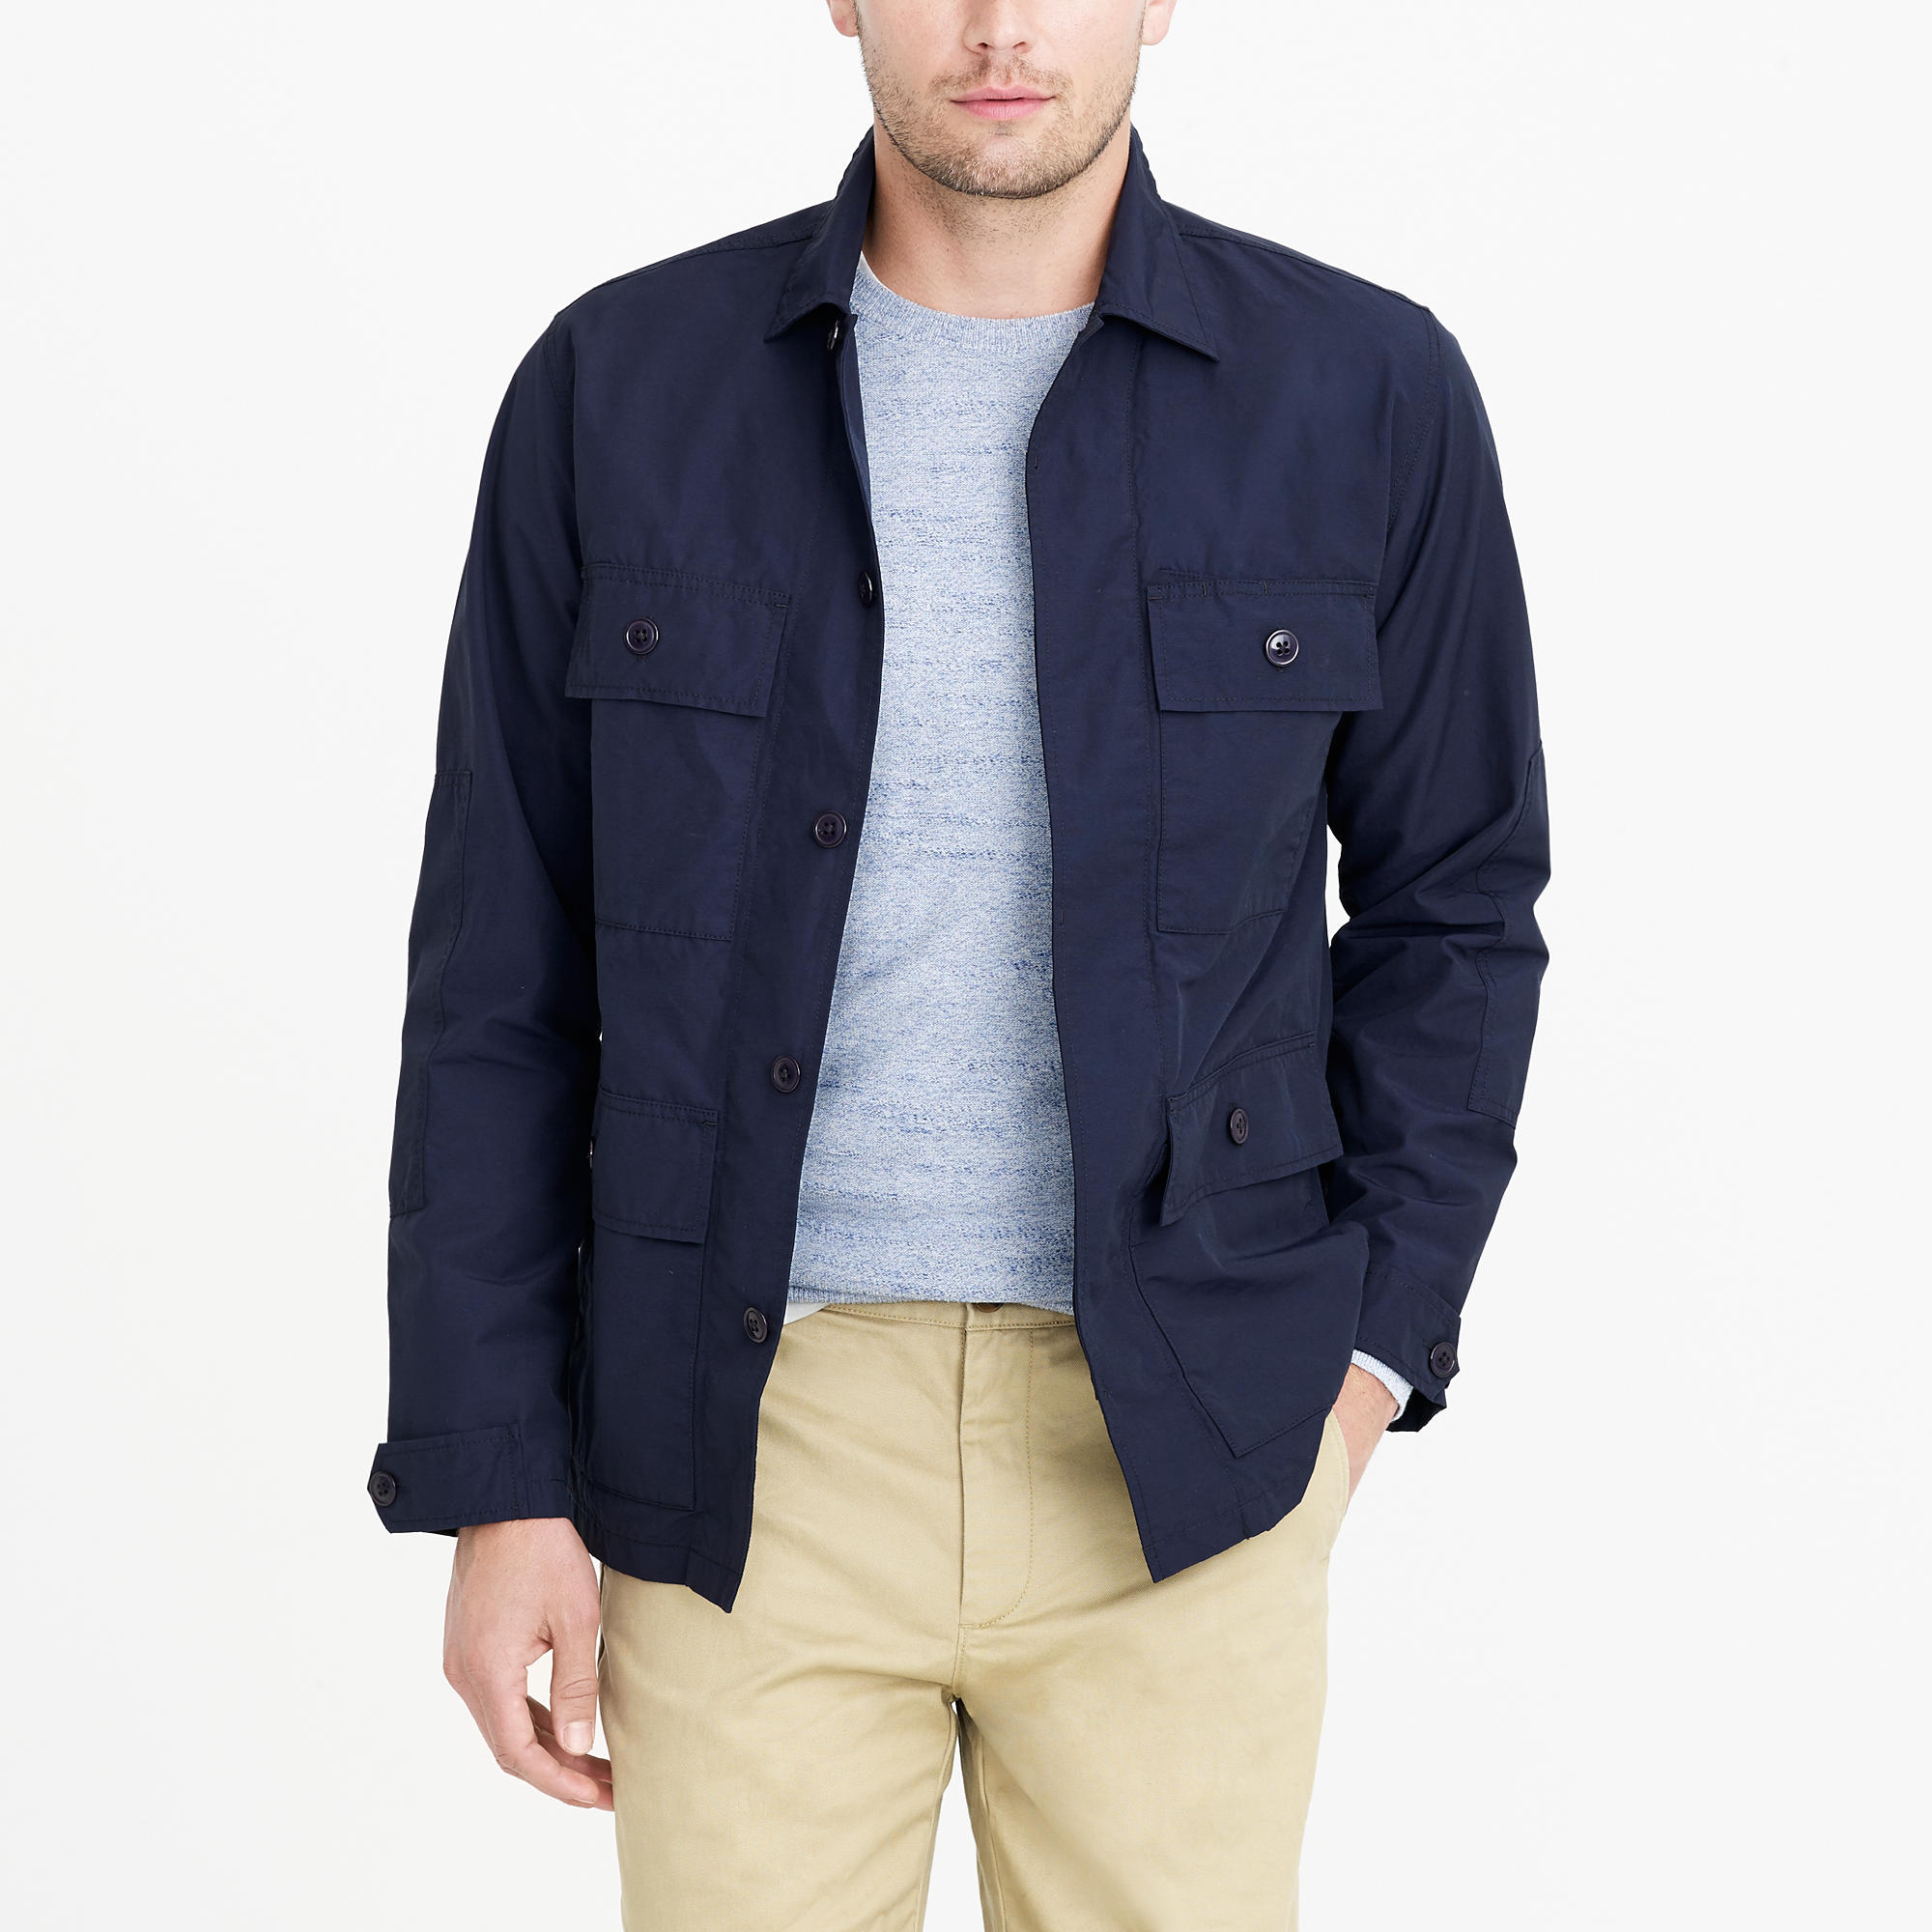 Men's Jackets | J.Crew Factory